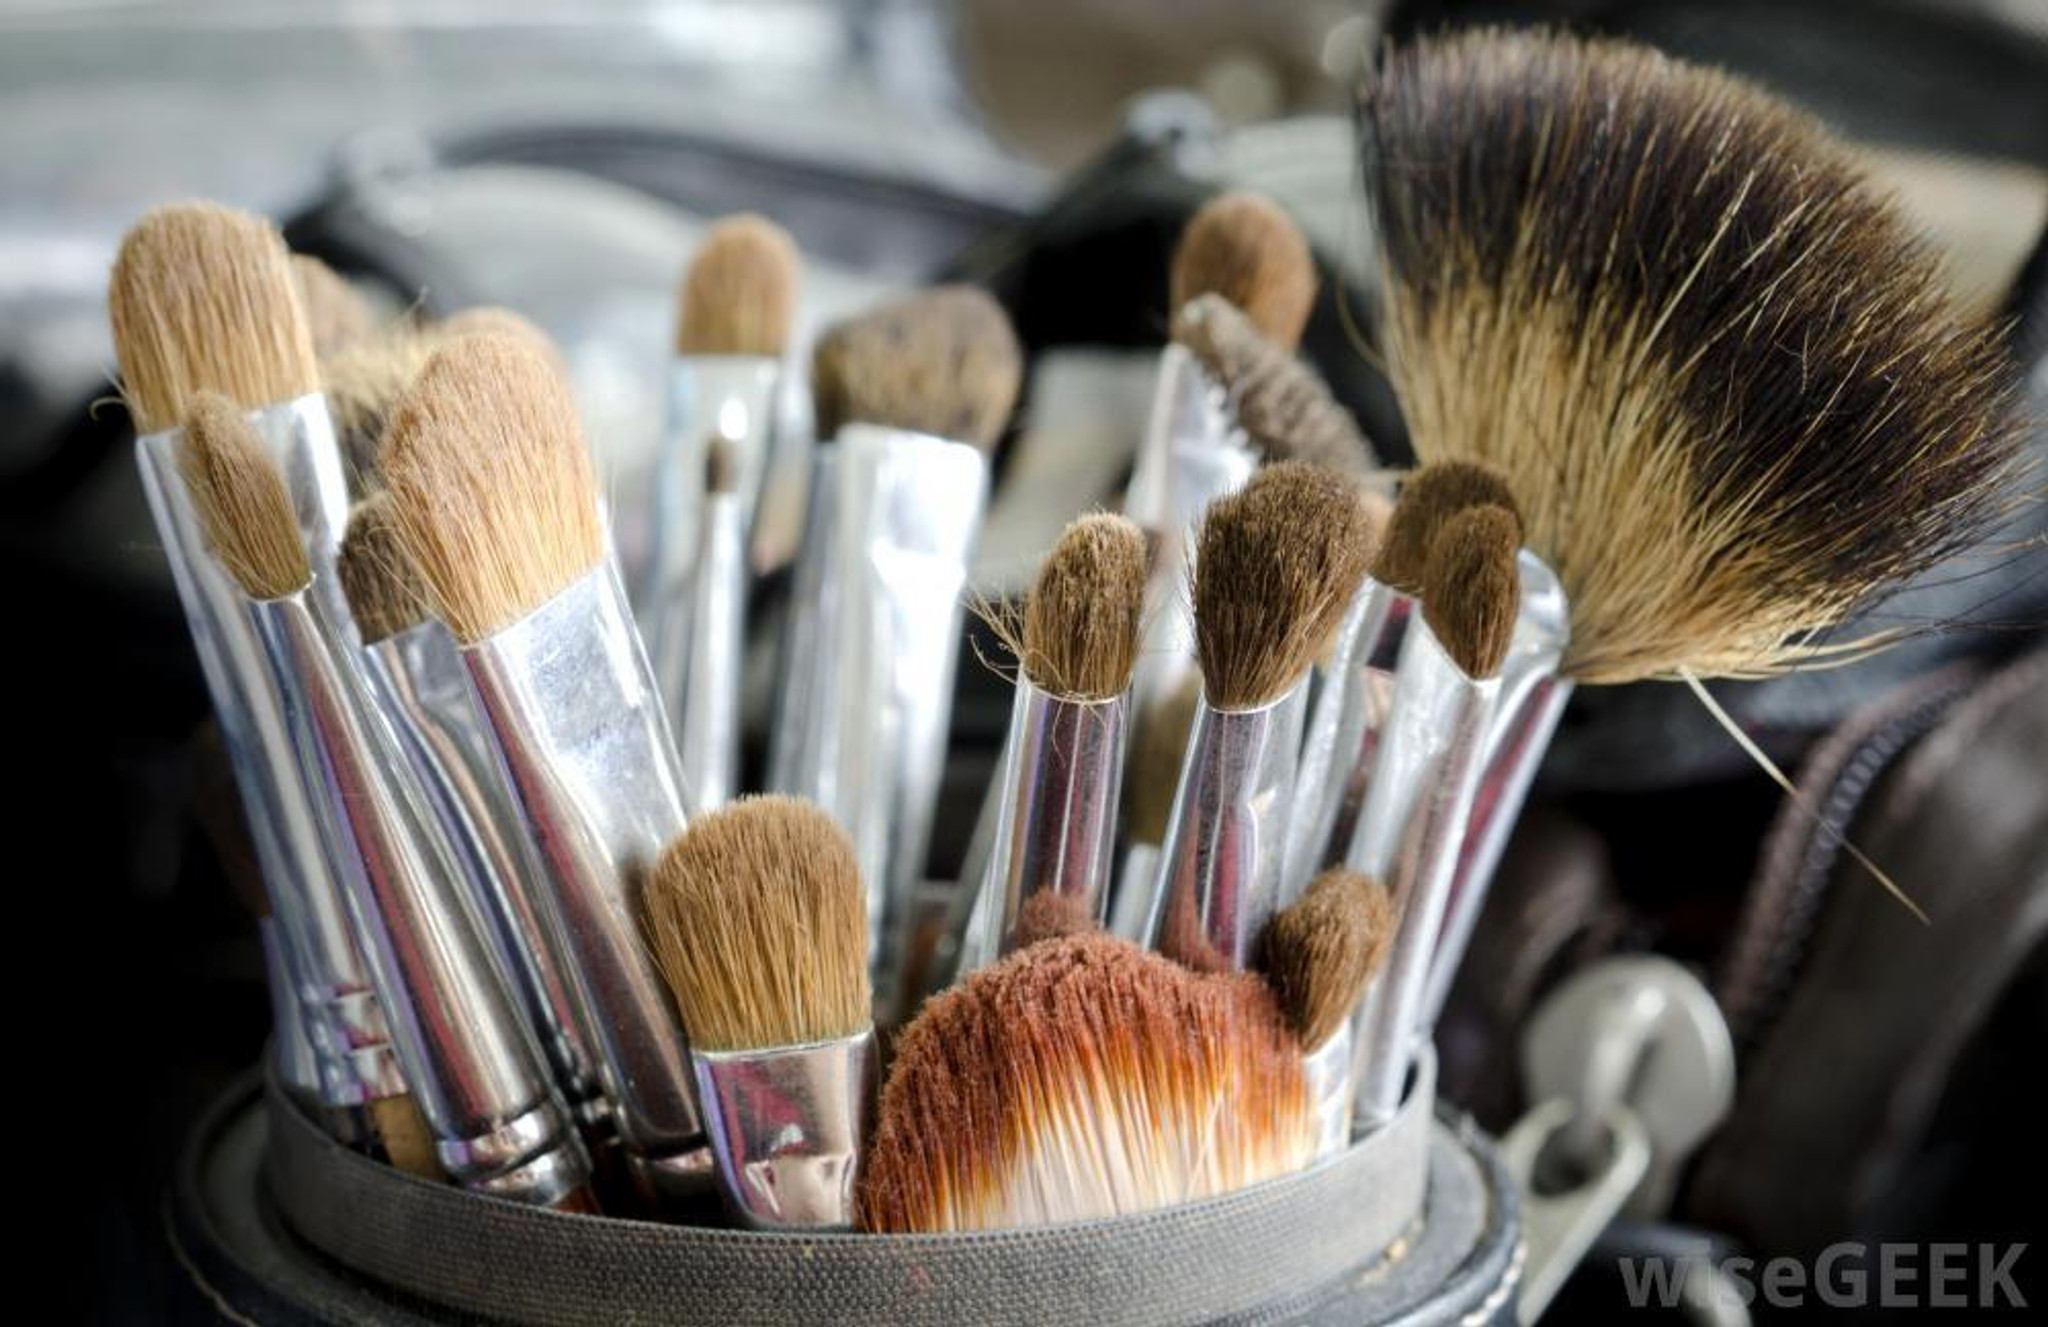 - Brushes, Applicators and Empty Jars